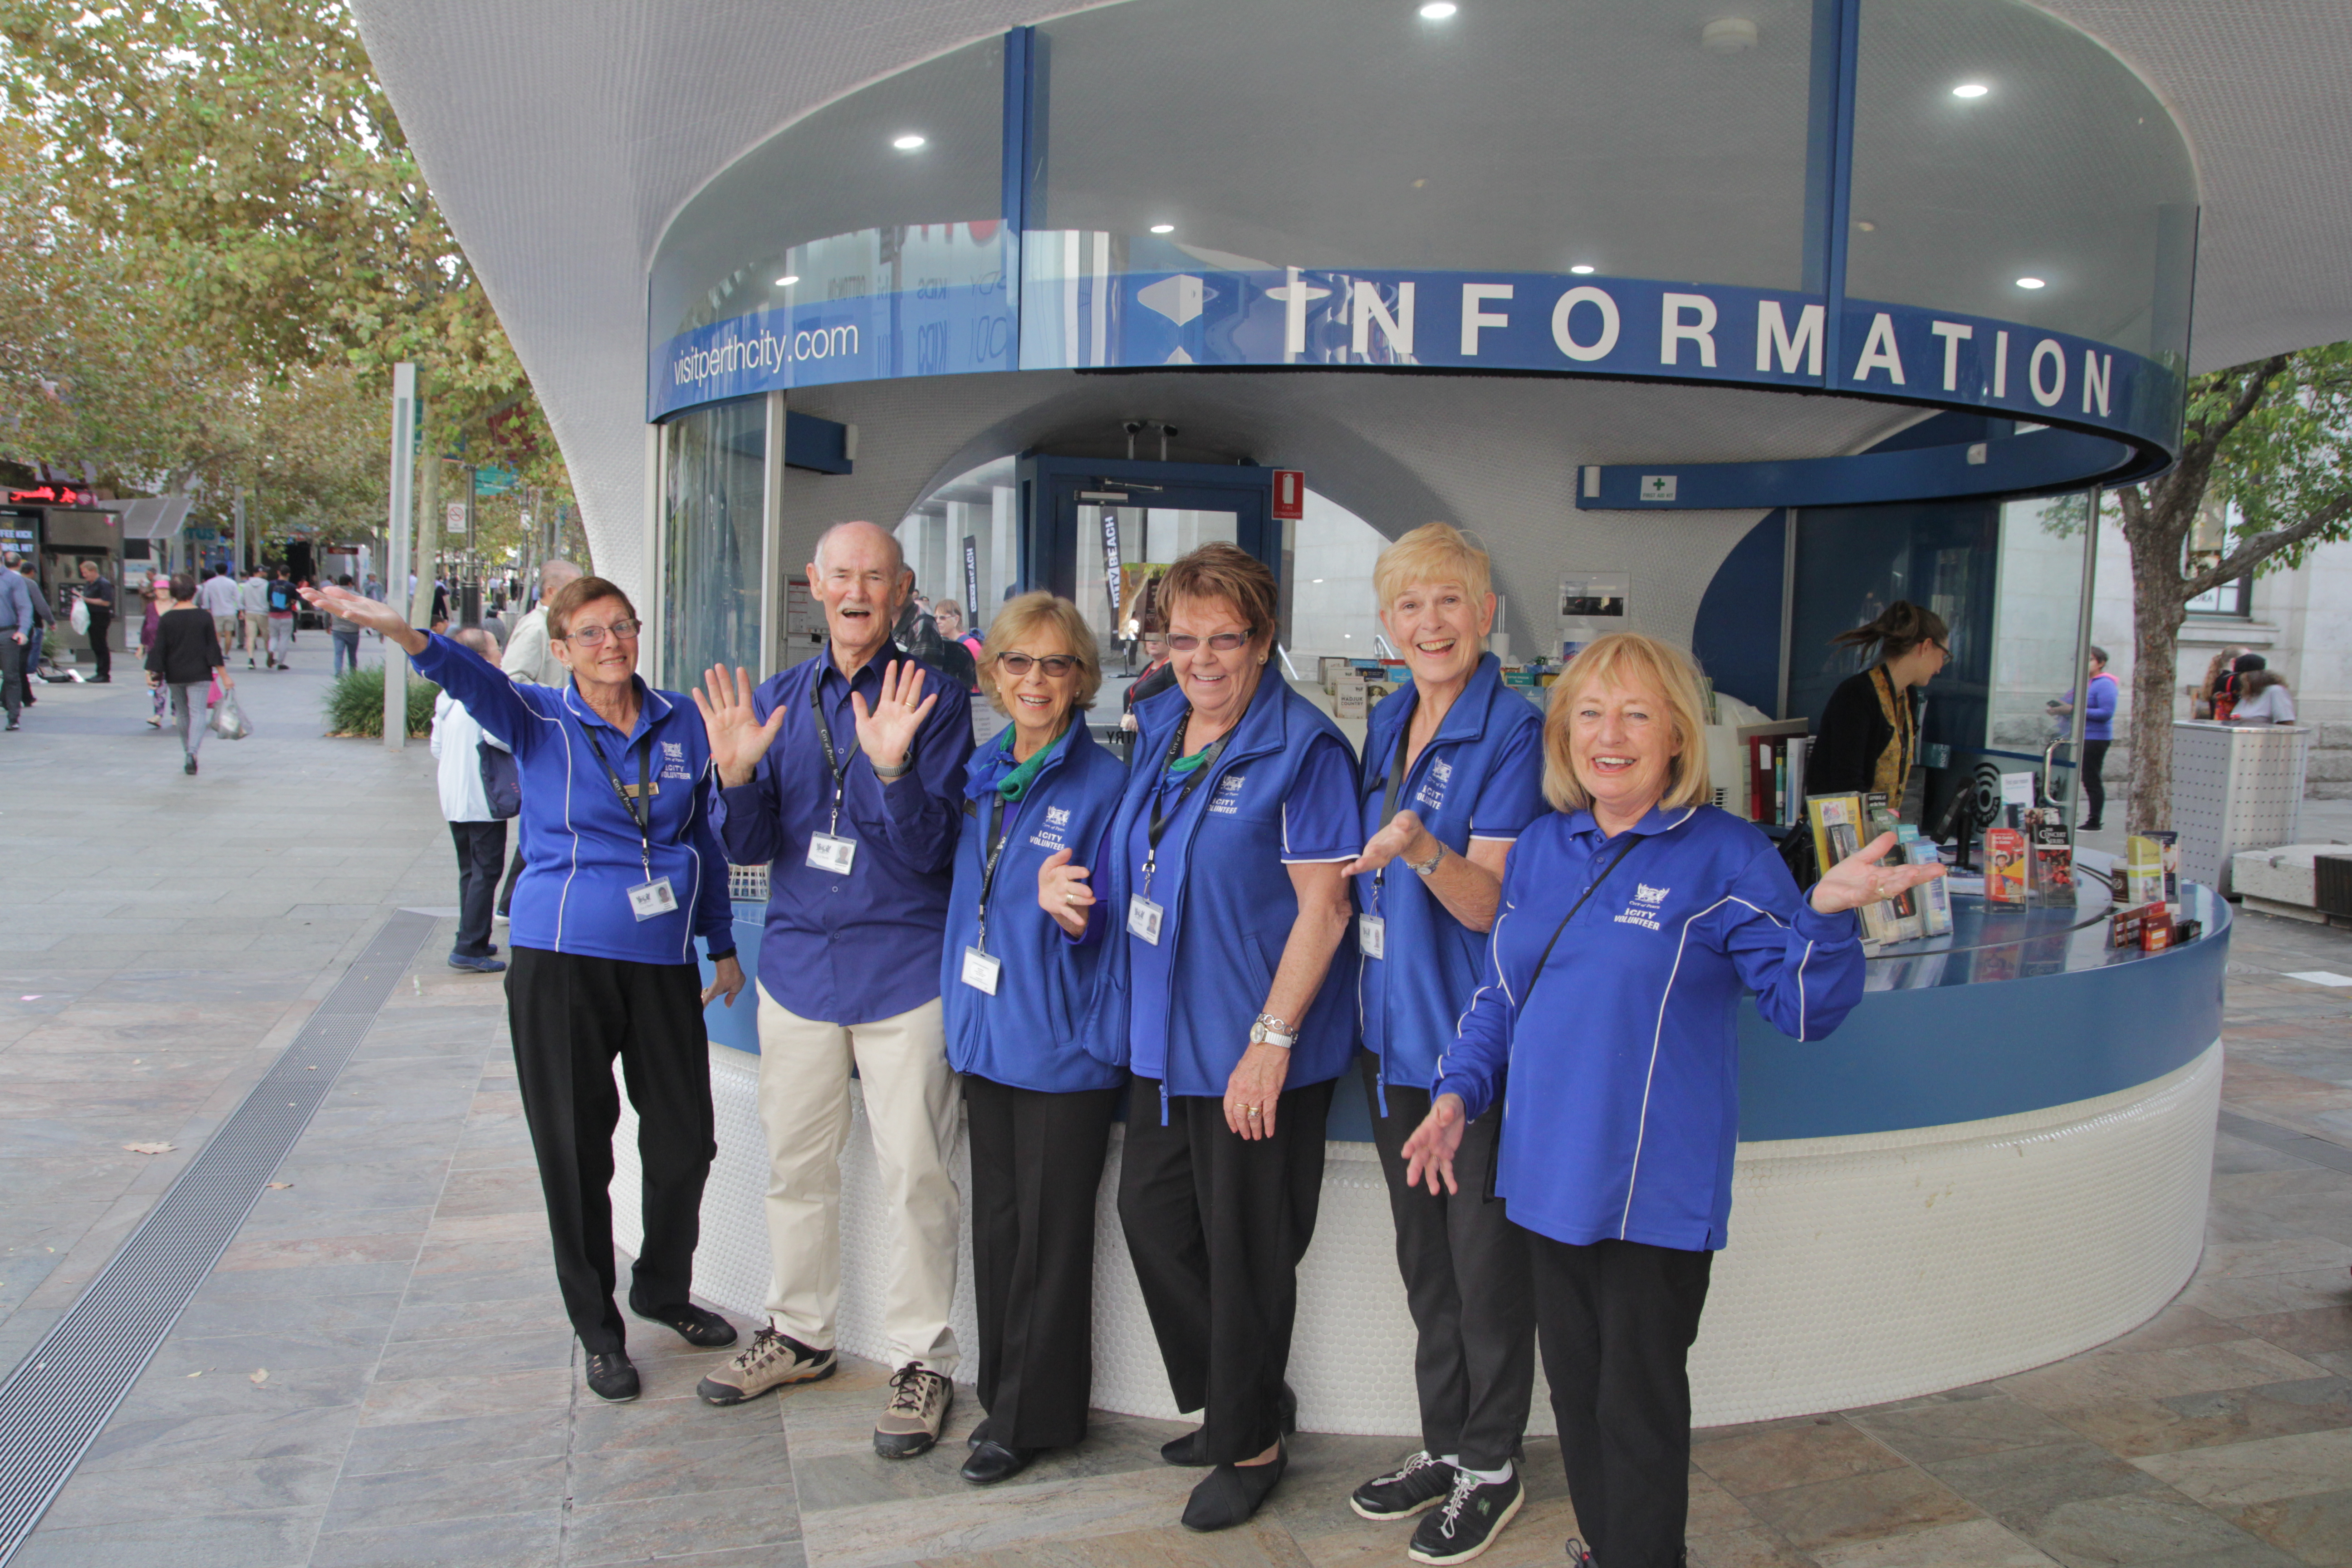 Volunteers at City of Perth's iCity Information Kiosk